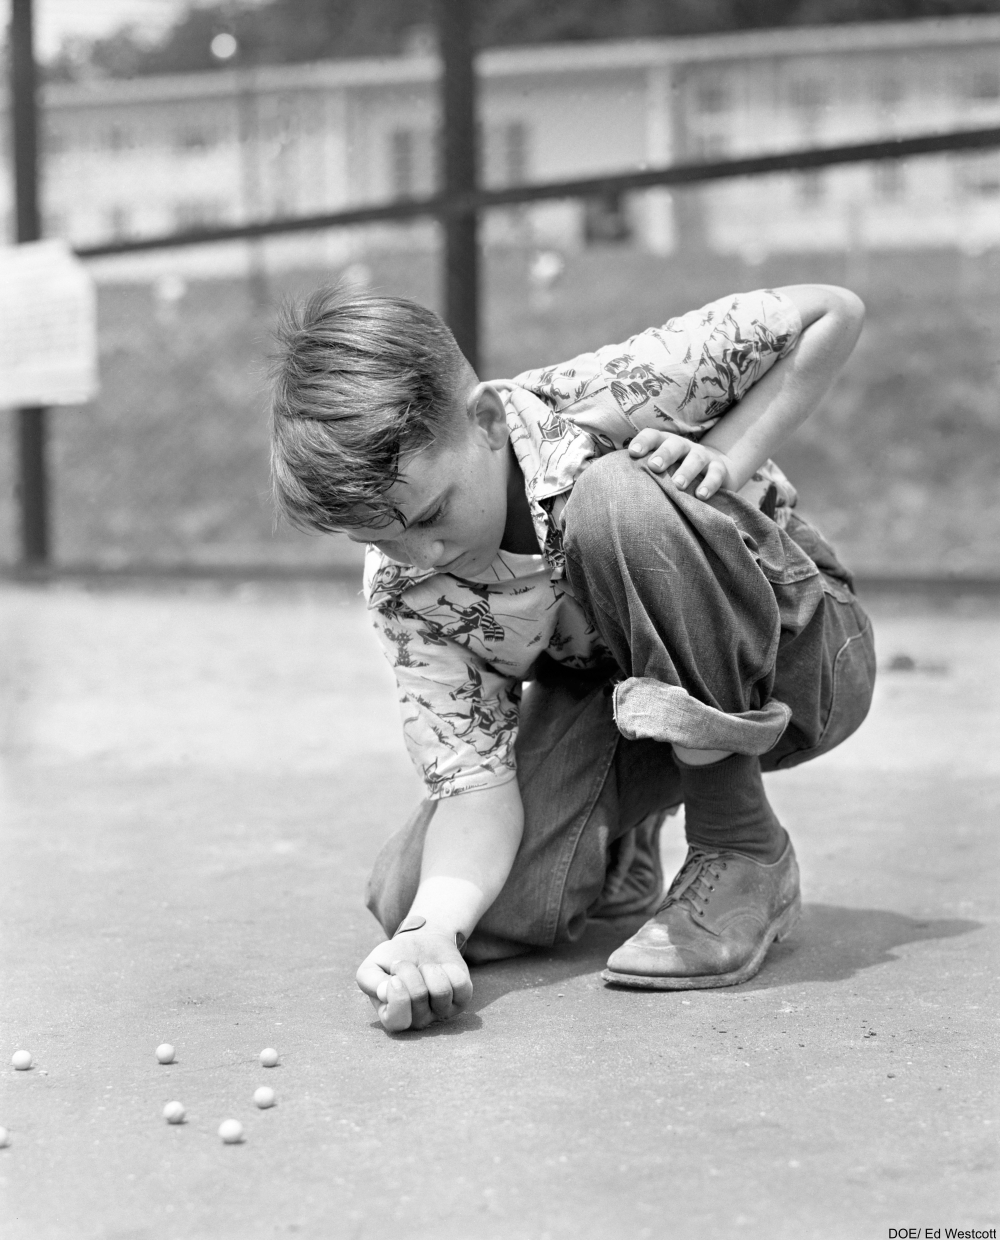 boy playing marbles on the ground